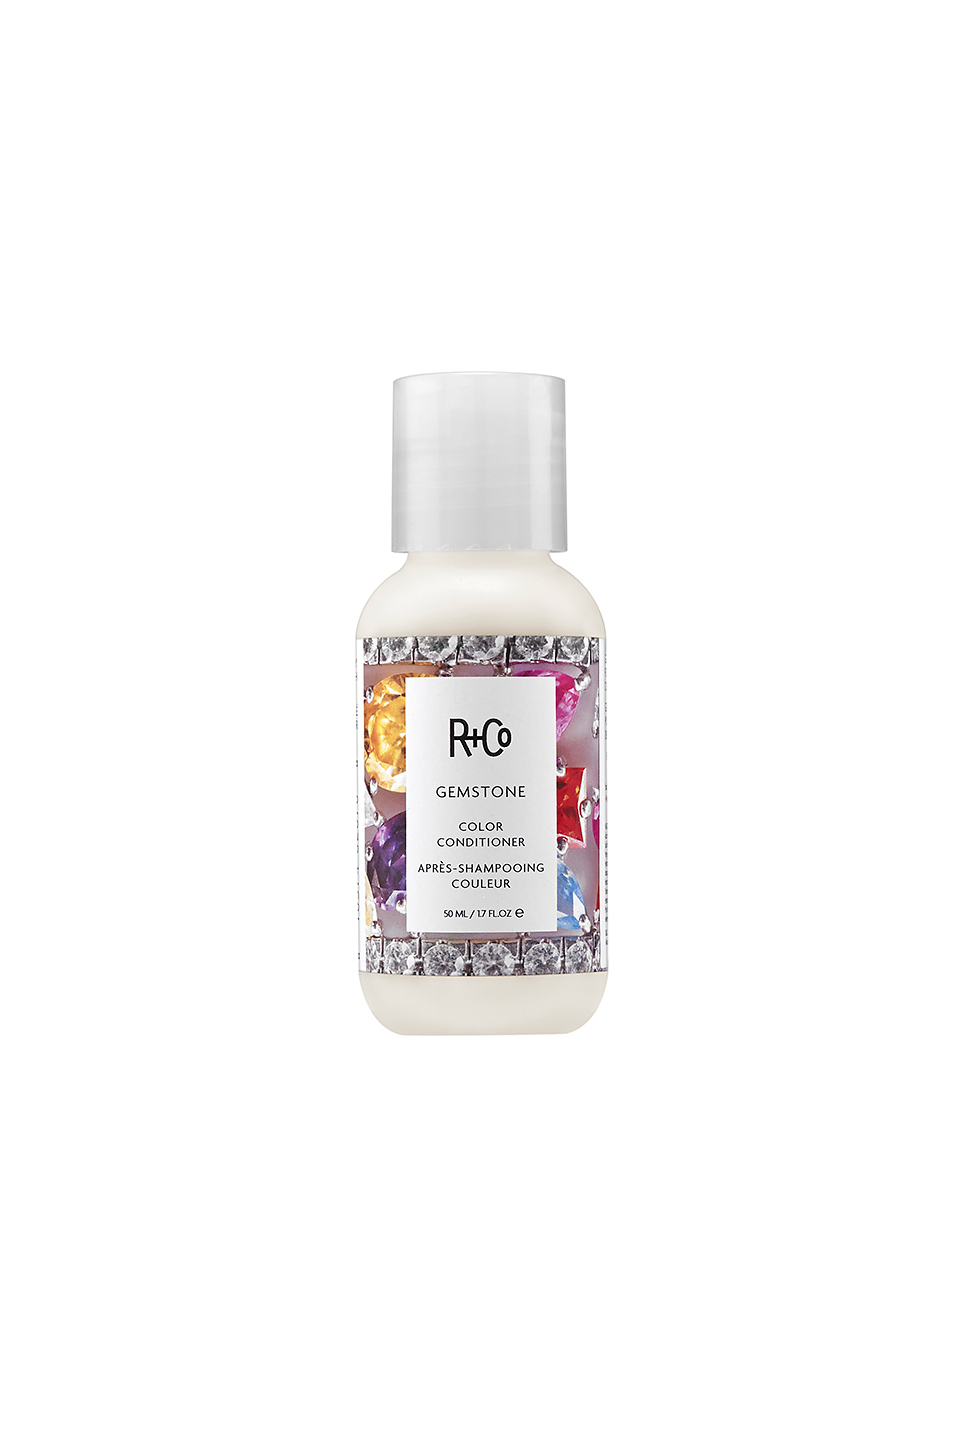 R+Co Travel Gemstone Color Conditioner in